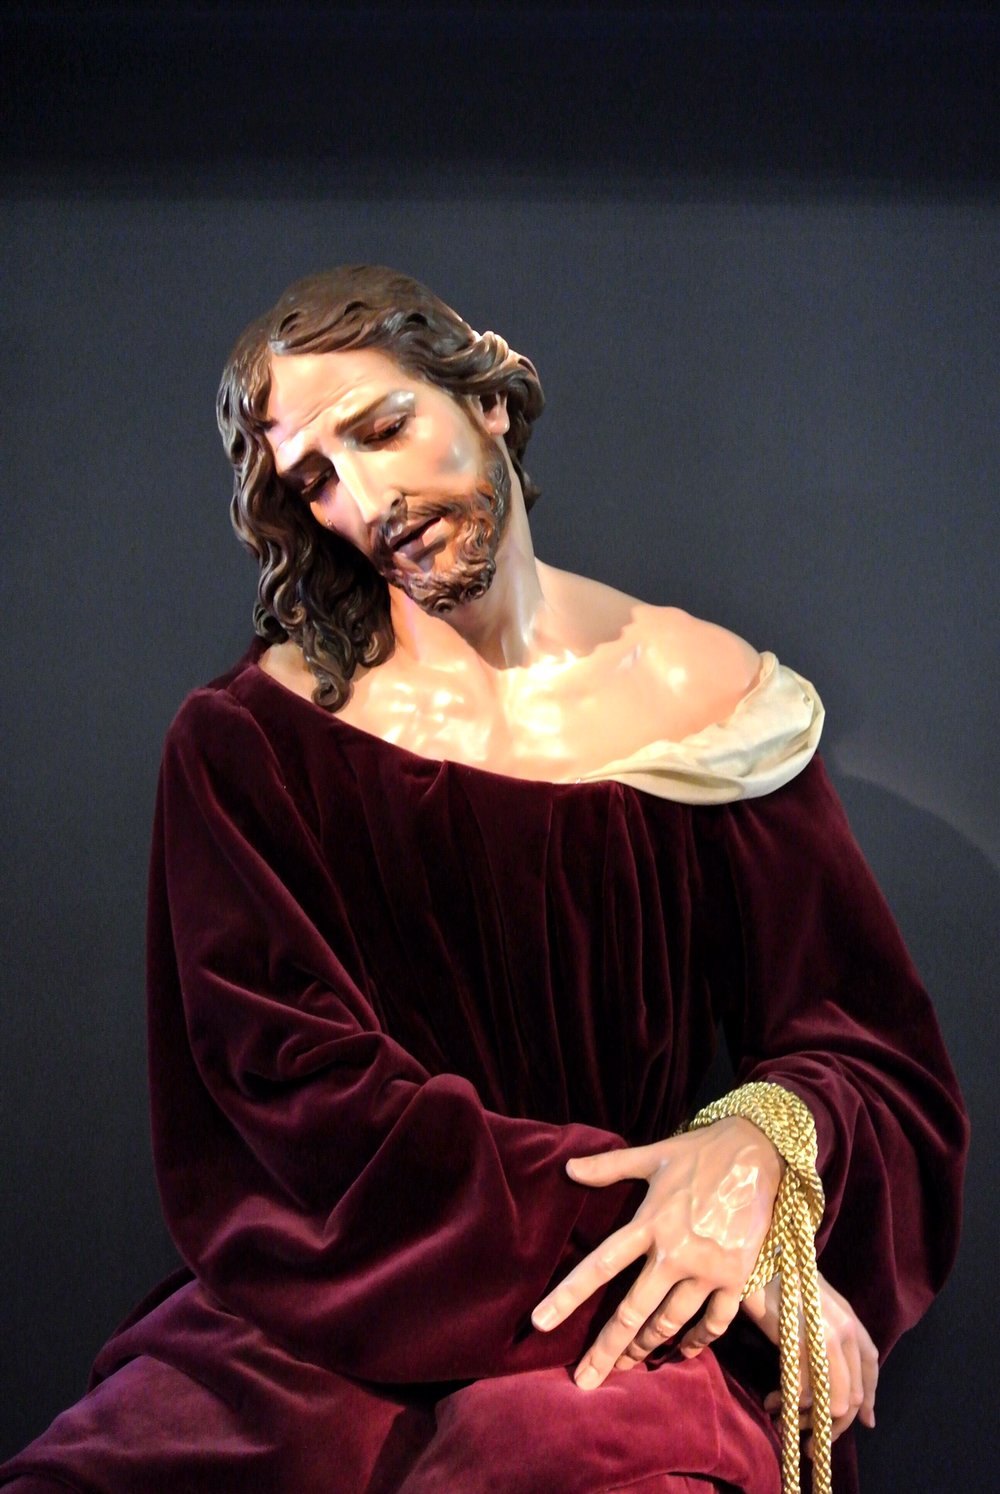 Jesús Cautivo (Bound Jesus), a life-size (and amazingly lifelike) seated Christ with wrists wrapped in real gold-colored rope.